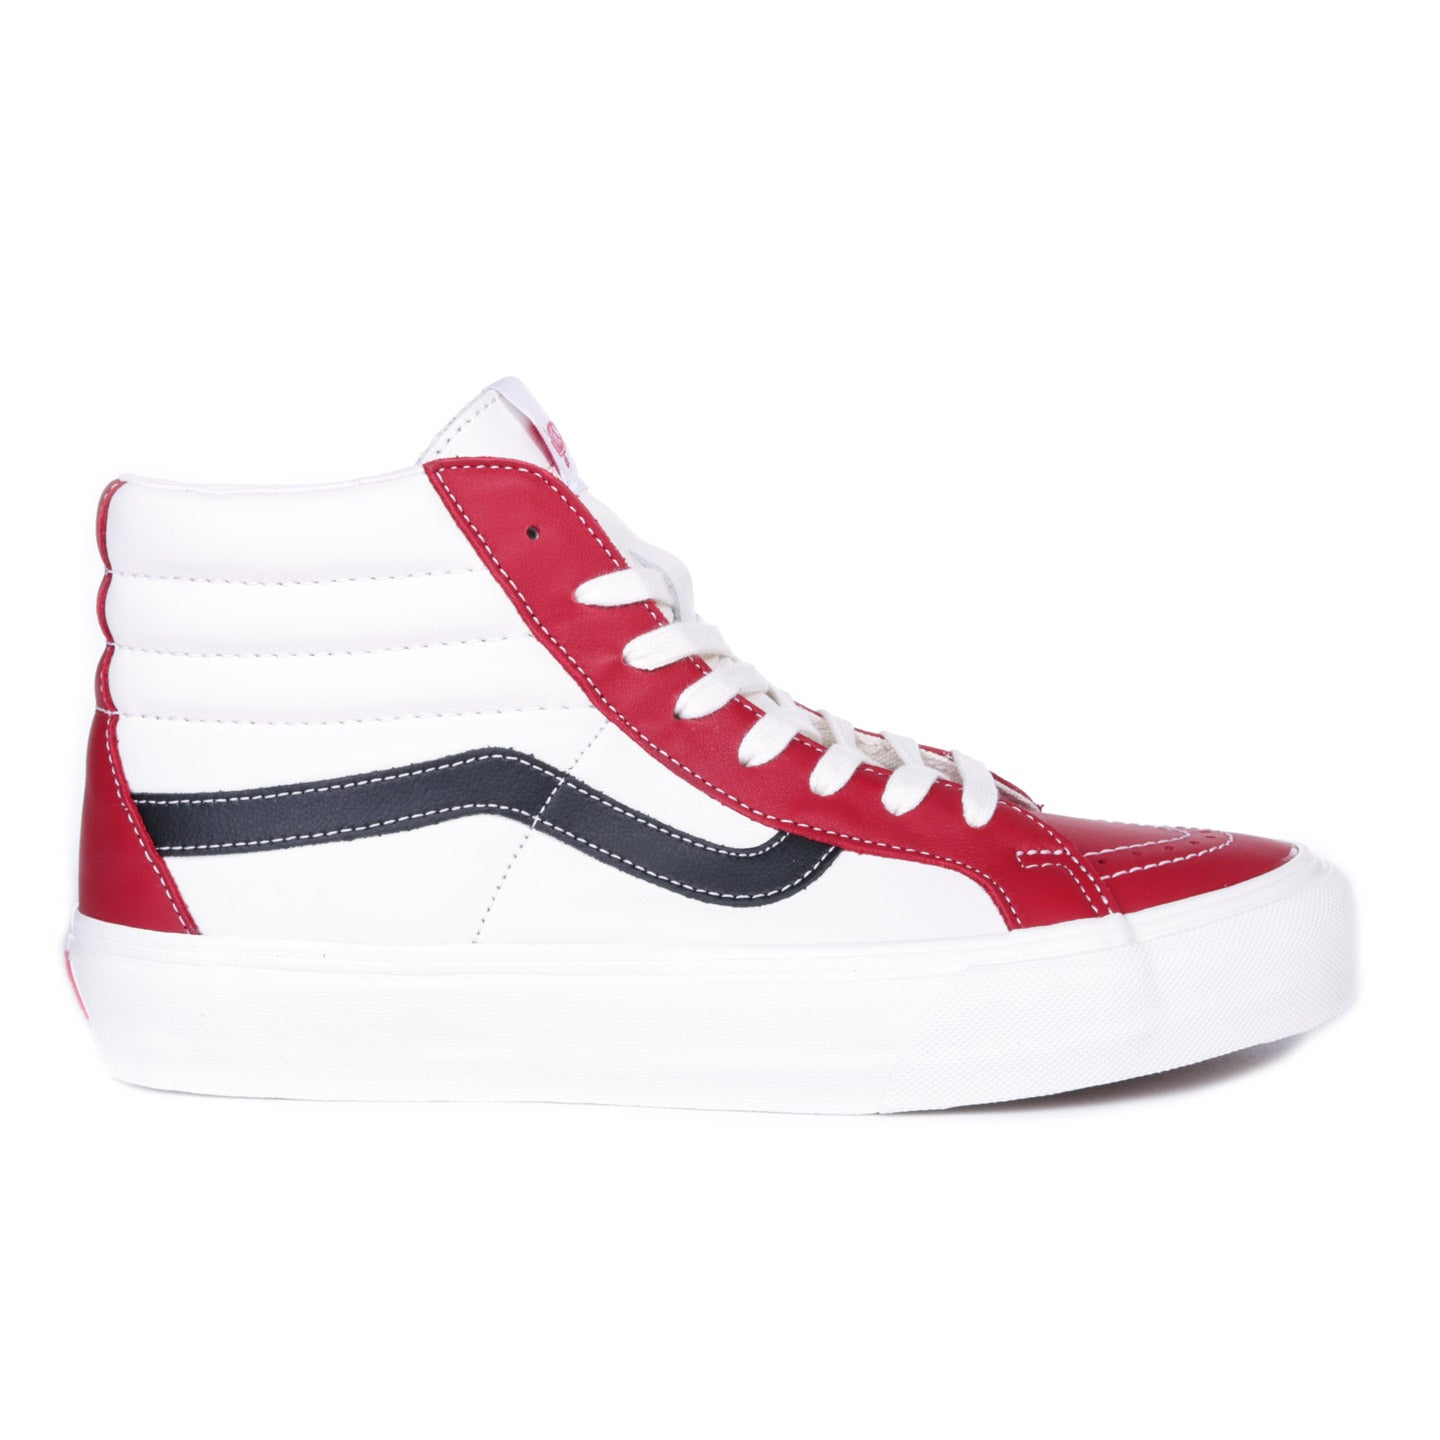 VAULT BY VANS SK8-HI REISSUE VLT LX CHILI PEPPER / MARSHMALLOW